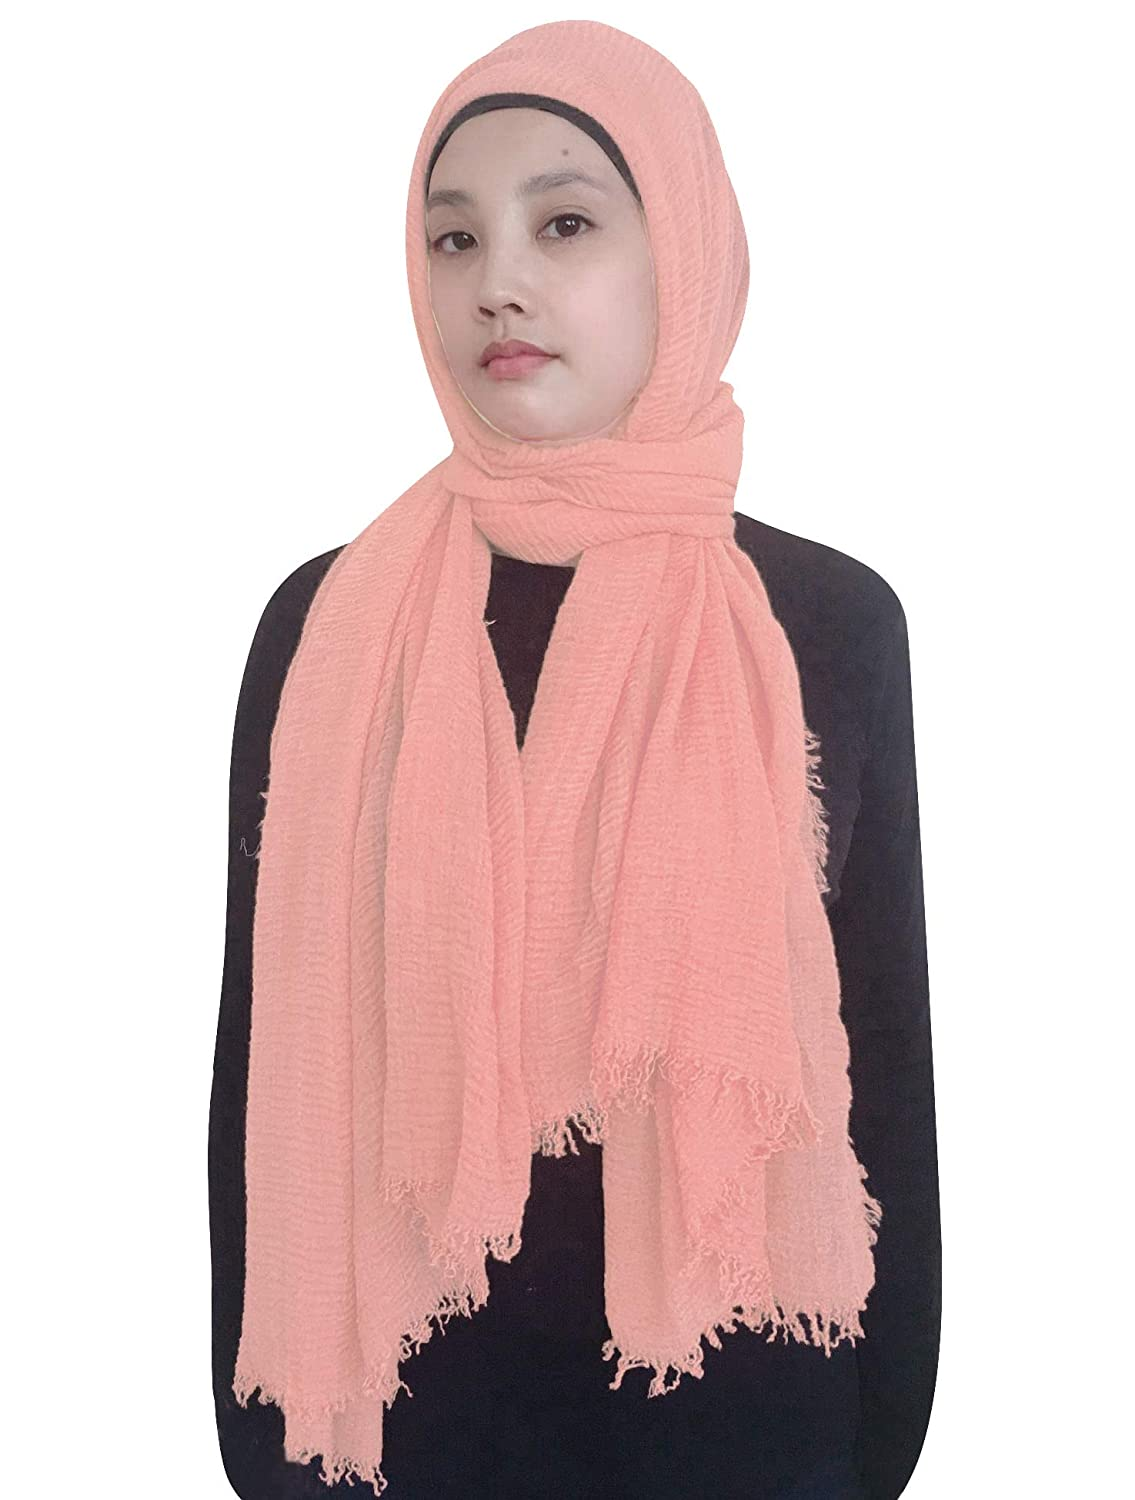 Lina & Lily Solid Color Crimp Crinkle Scarf Hijab with Frayed Edges (Army Green)